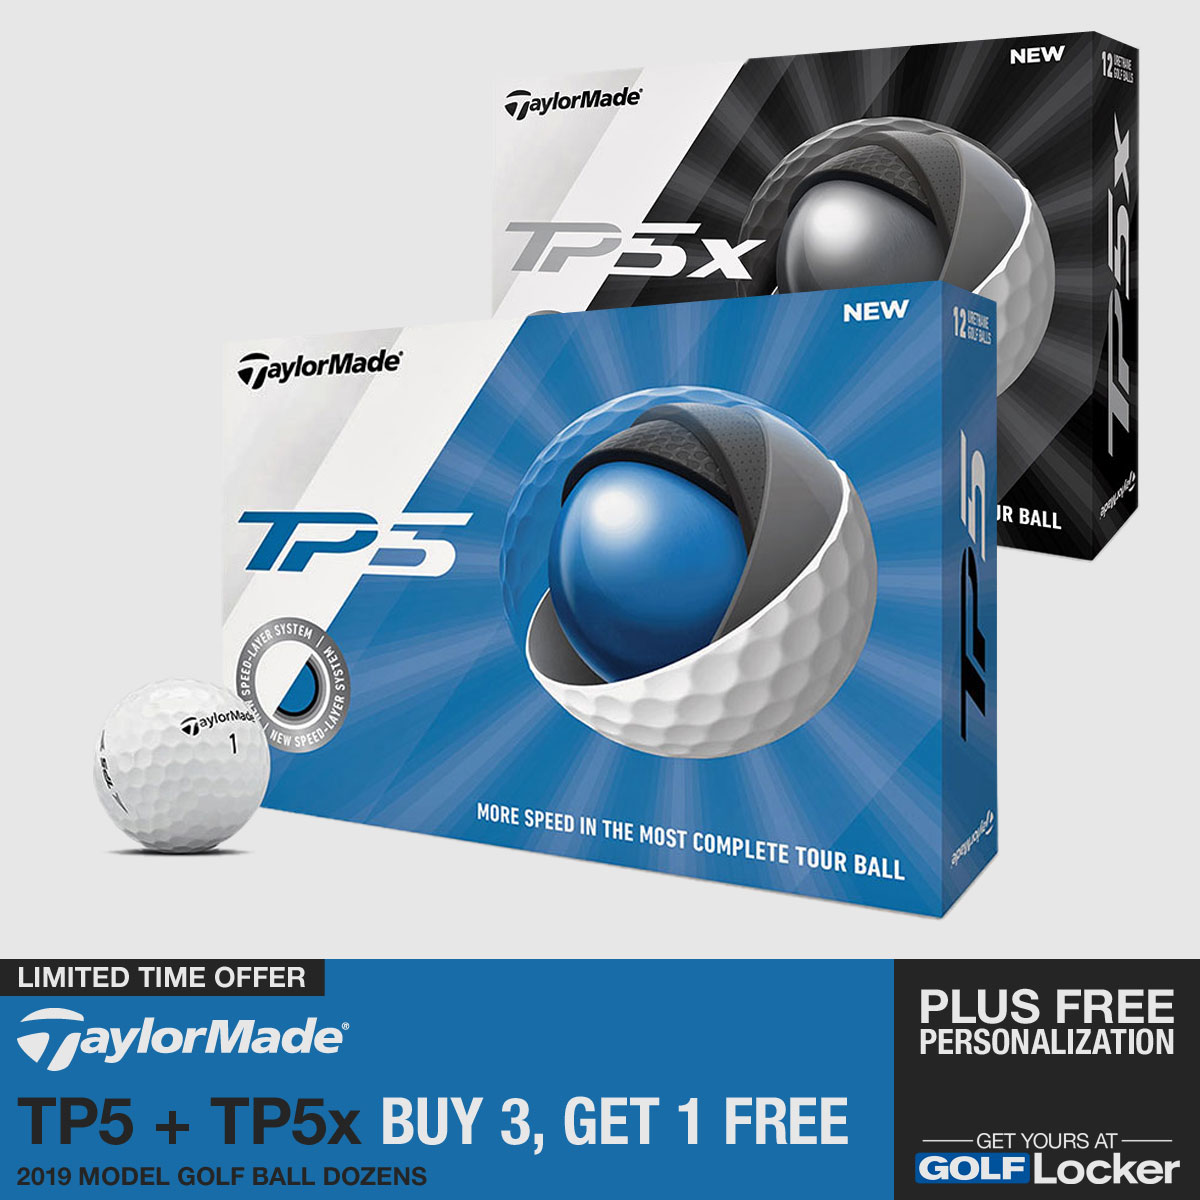 TaylorMade TP5 + TP5x Balls - Buy 3, Get 1 Free